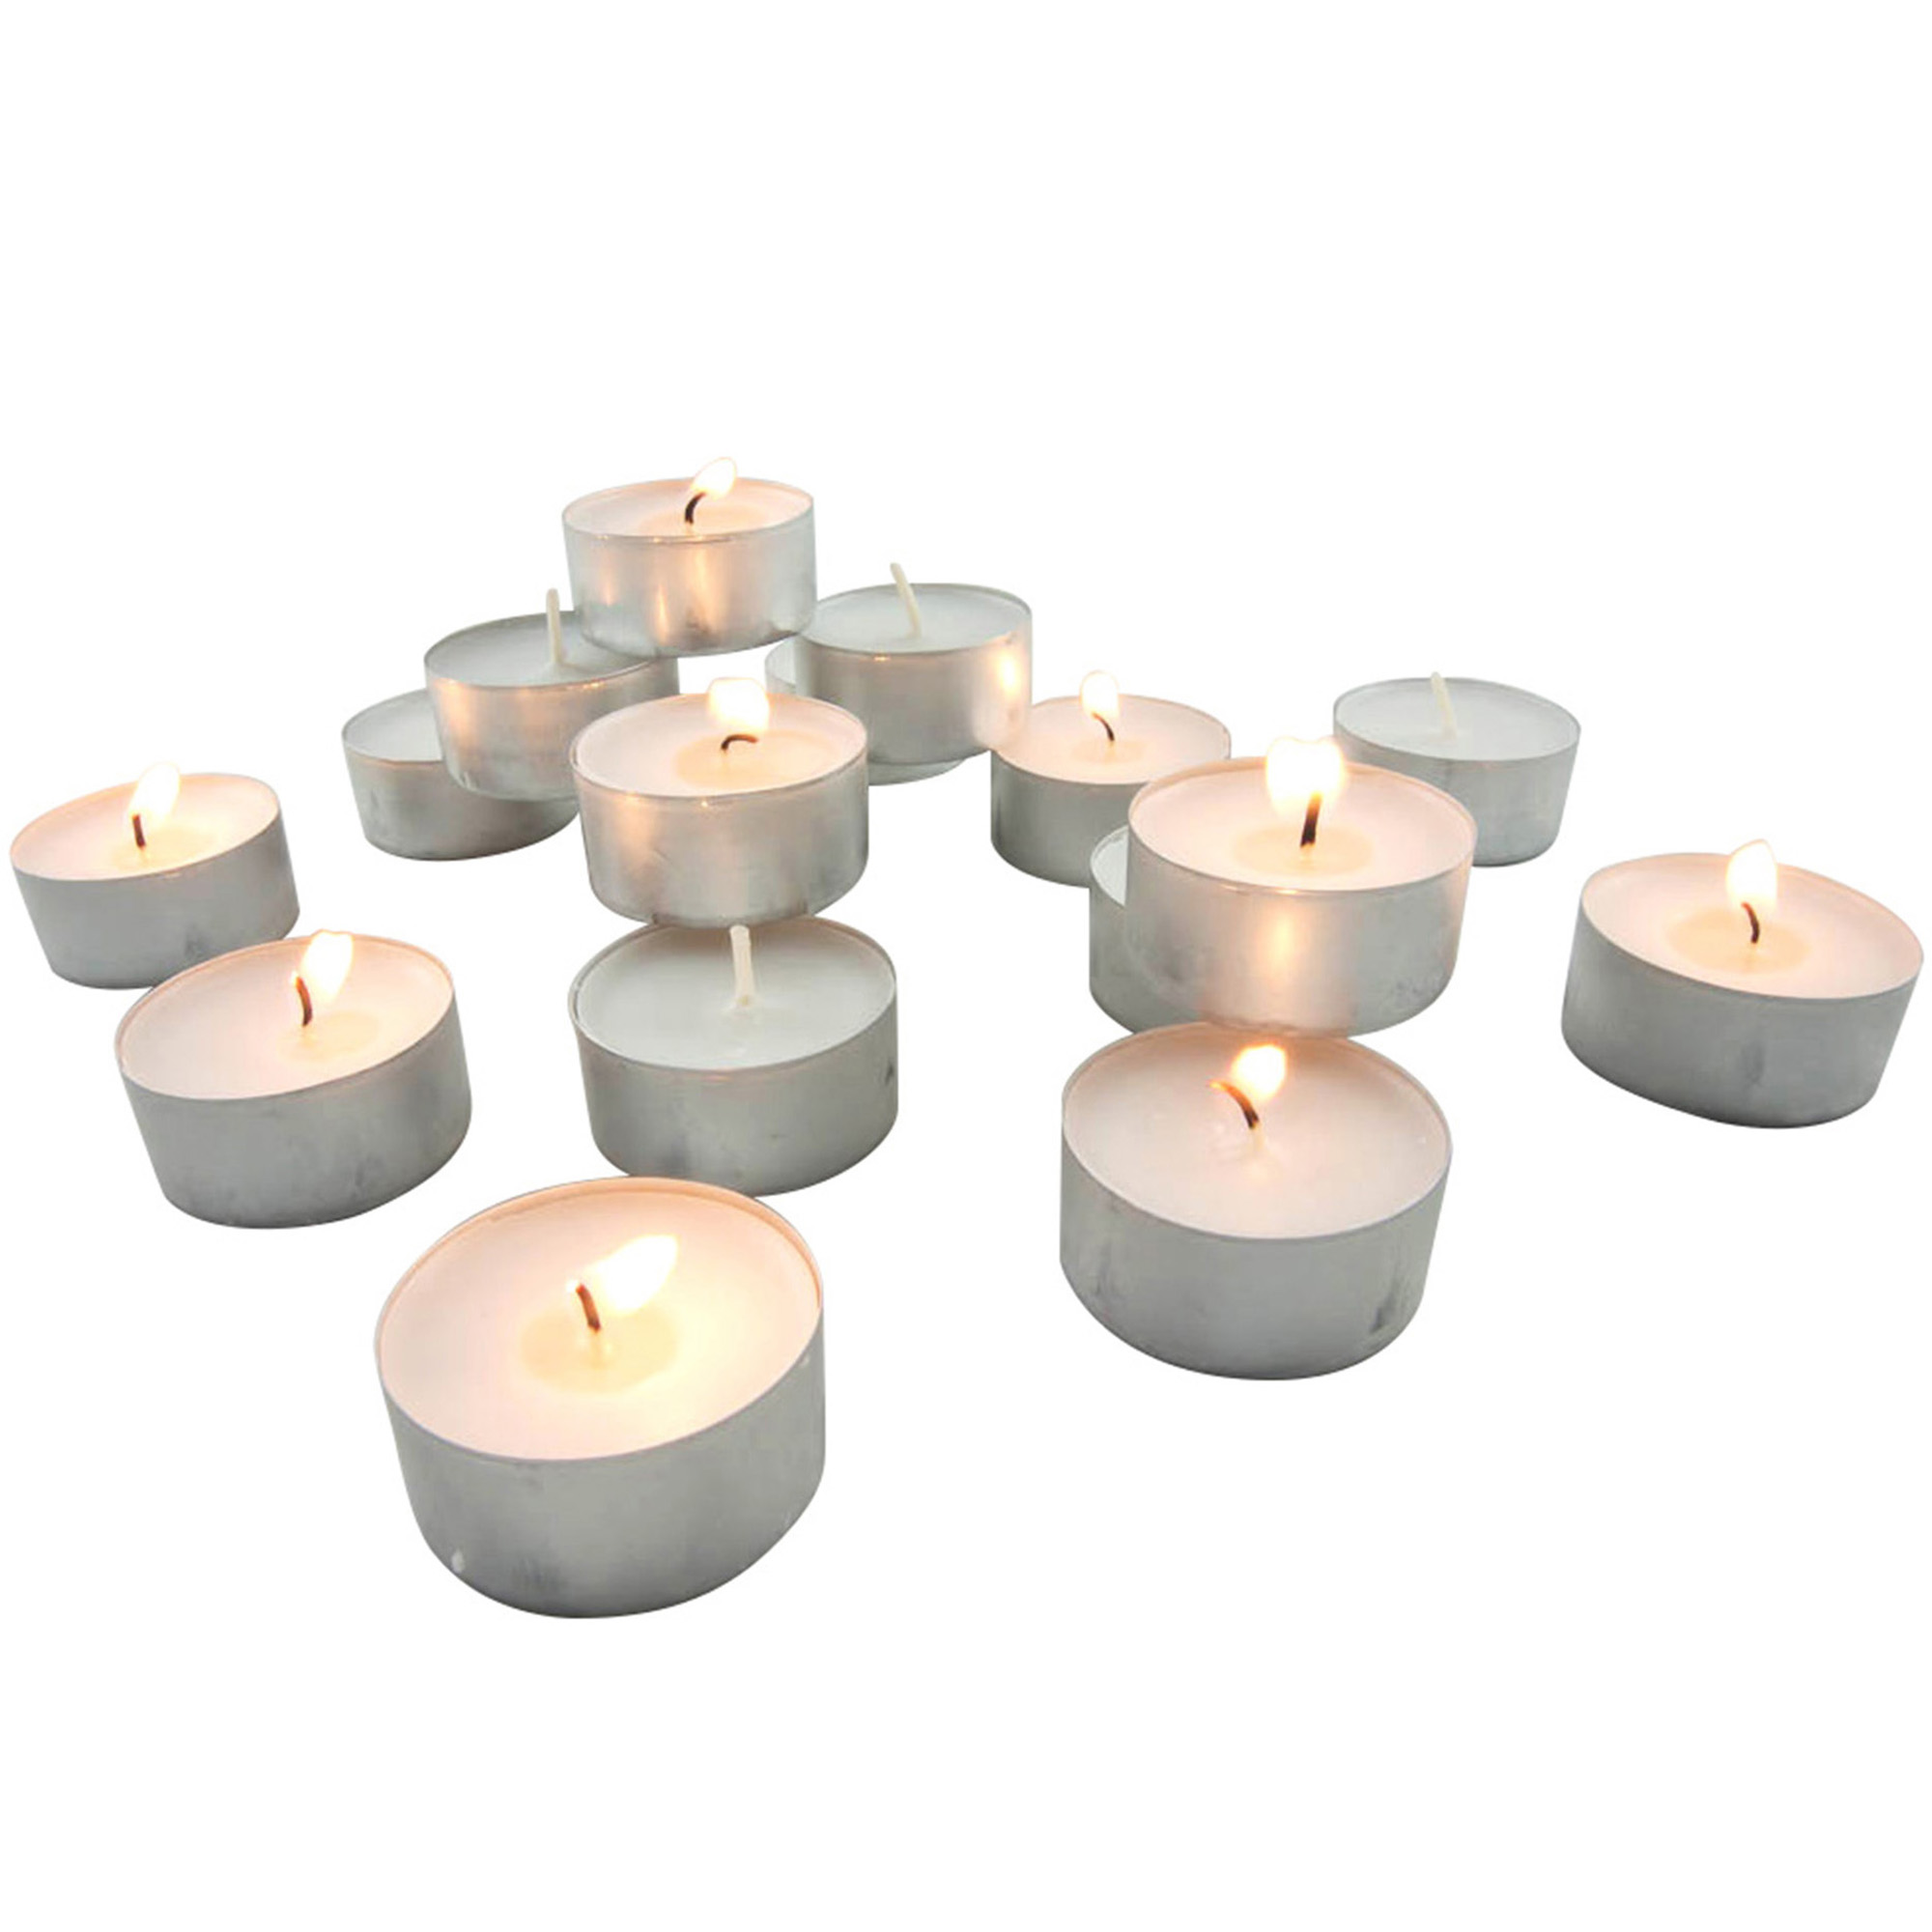 Tea Lights Walmart